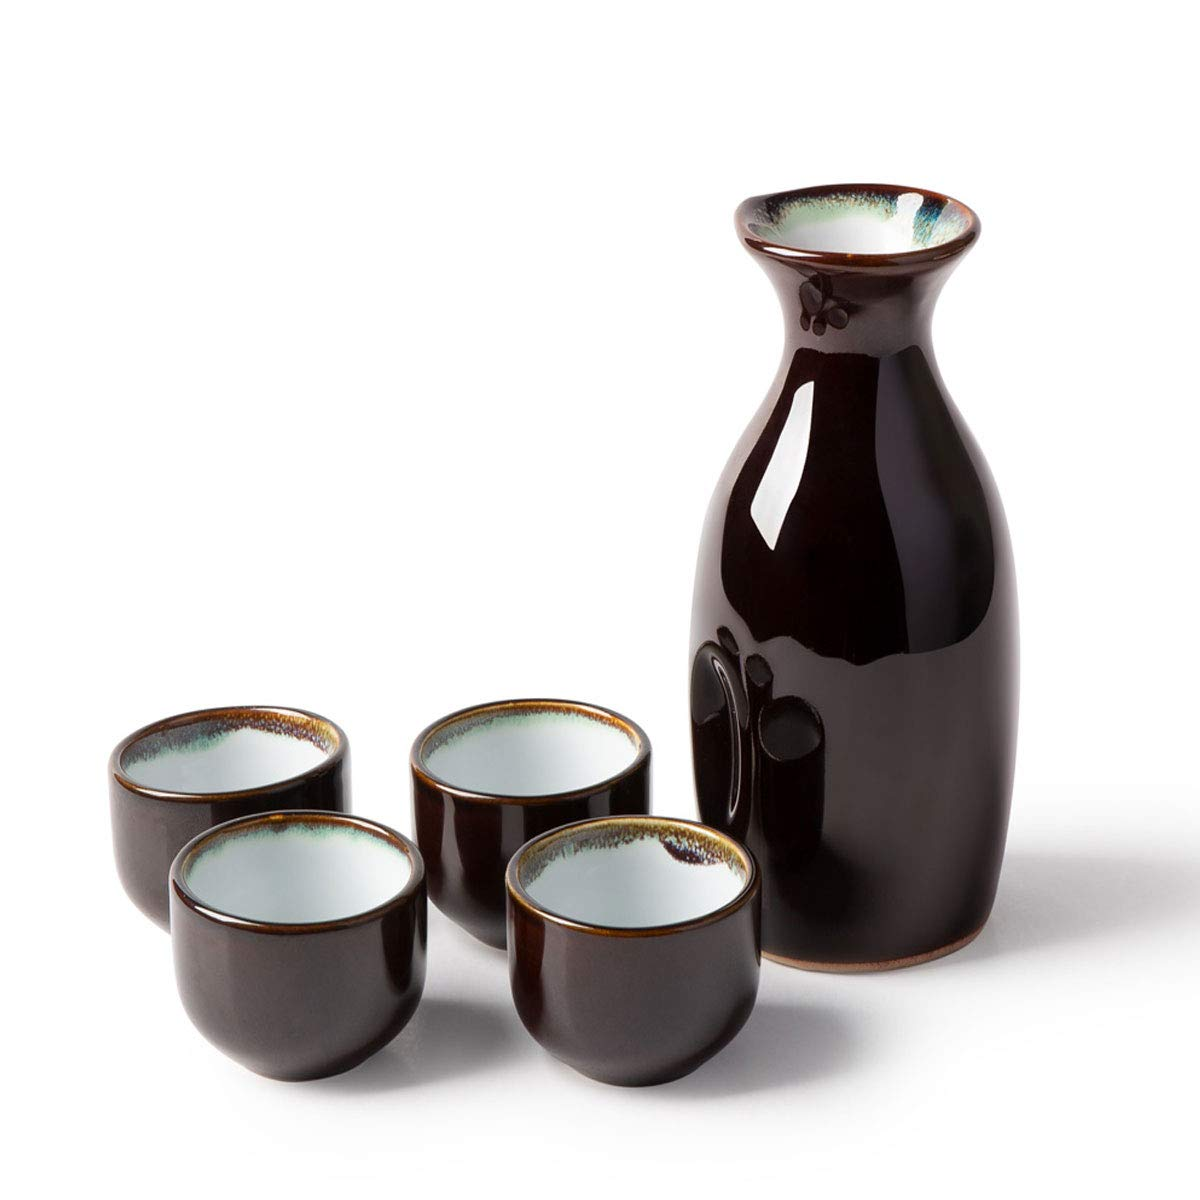 KBNI 5-Piece Japanese Sake Set Sky Blue Rim include 1PC Sake bottle and 4PCS Sake Cups by KBNI